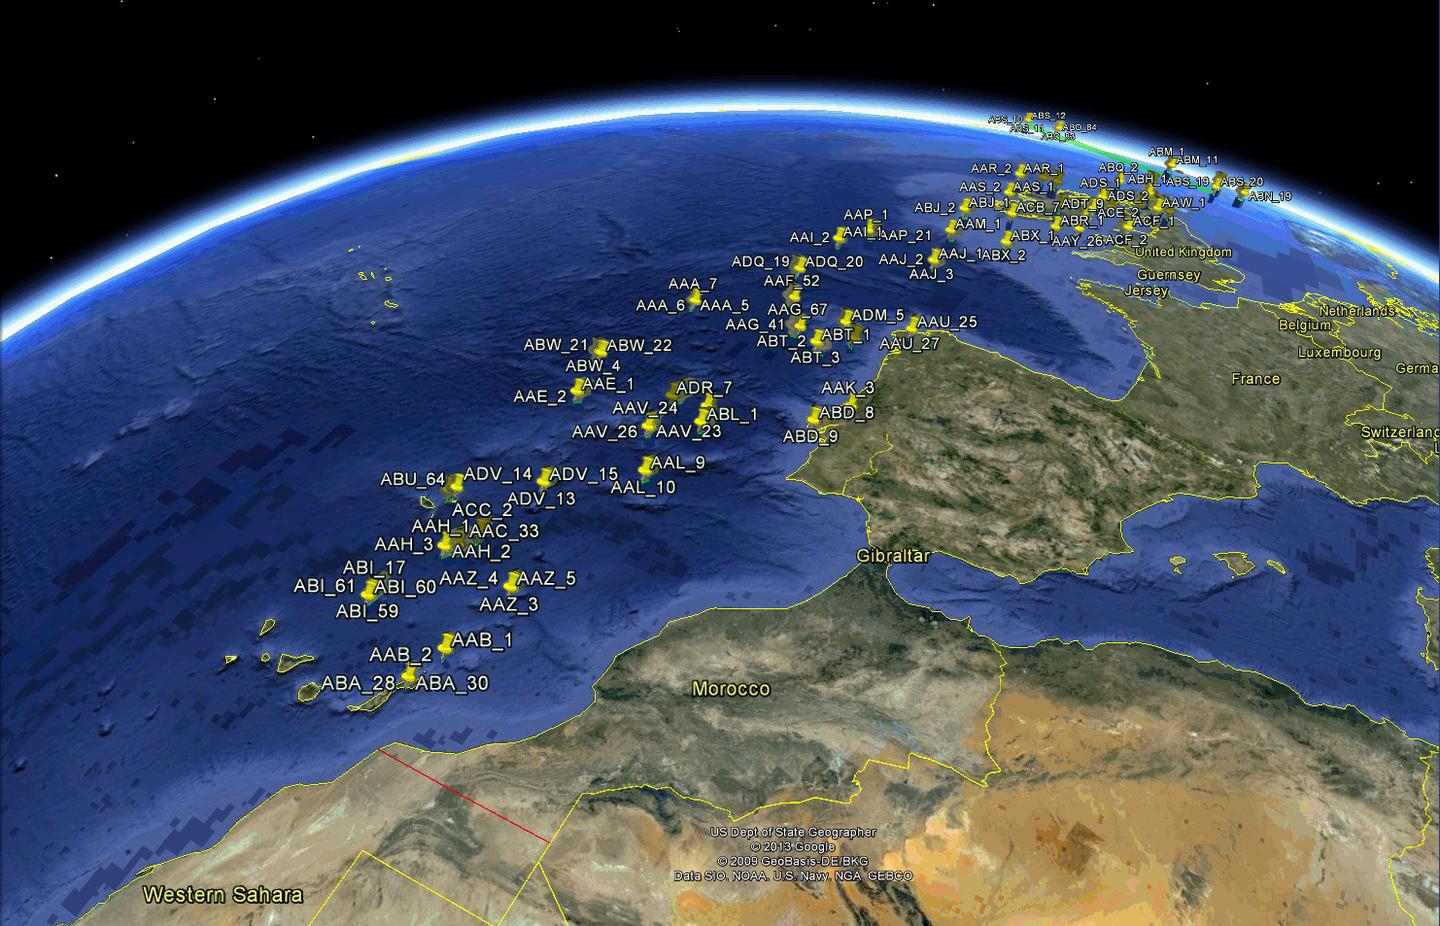 ESA's Proba-V satellite pinpointed the location of aircraft in flight over the Atlantic approach to western Europe and the UK through their ADS-B signals